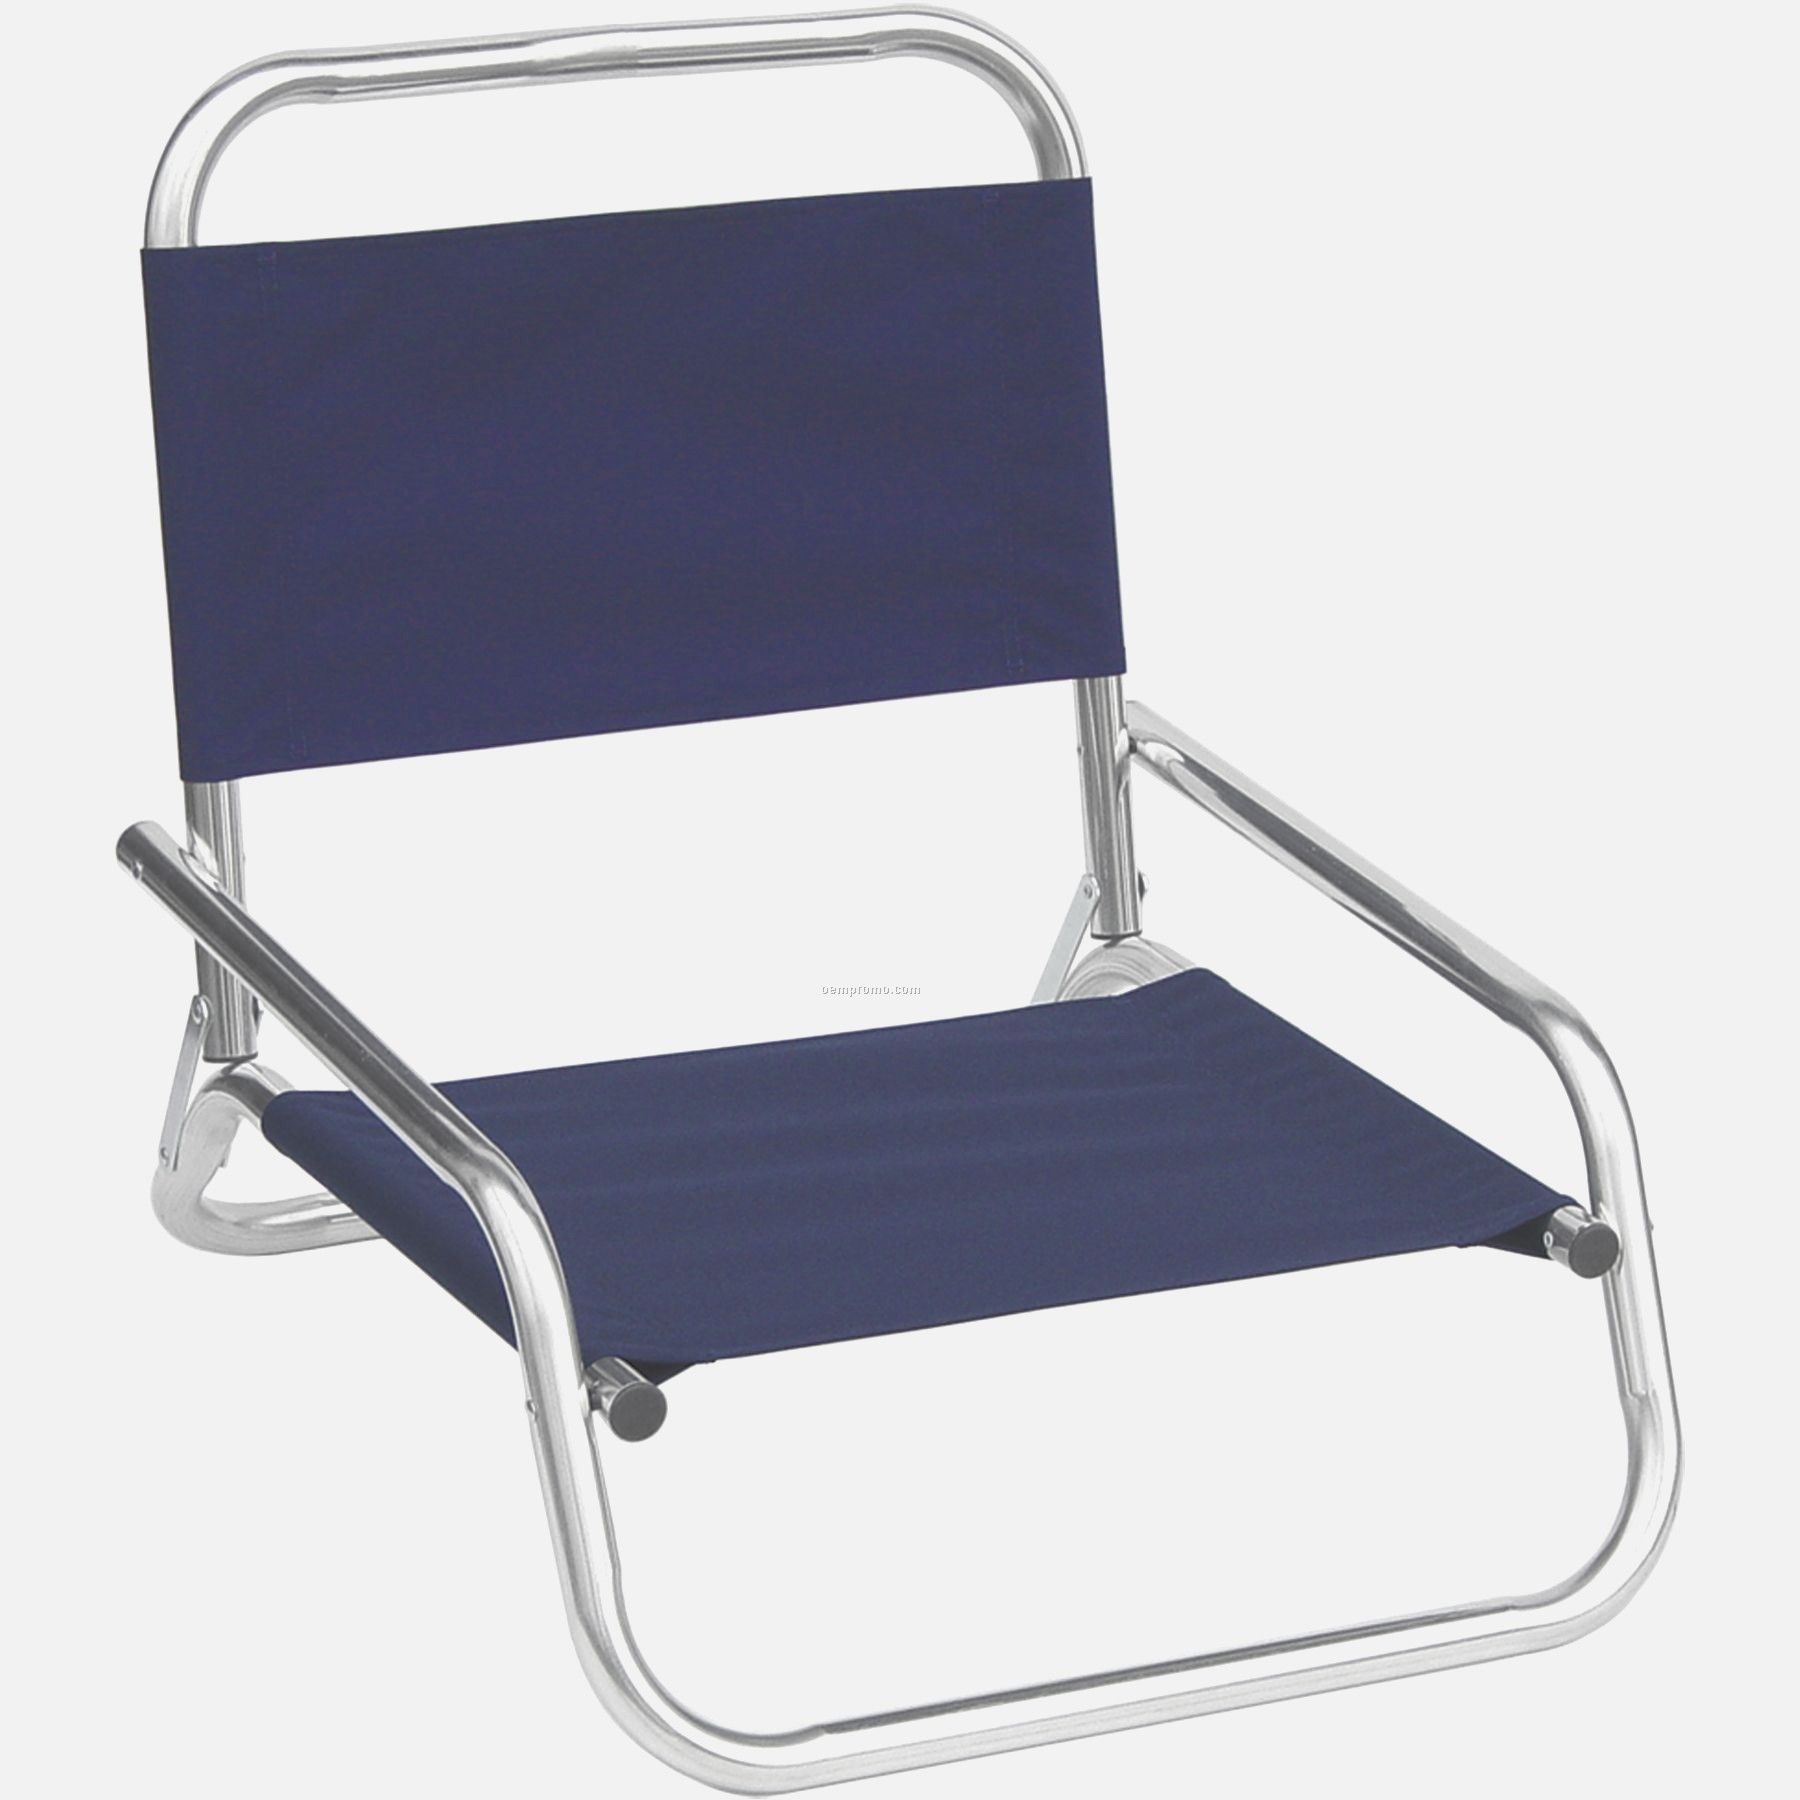 Low Back Lawn Chair 9 Best Racing Beach Chairs With Support Cheap High Aluminum